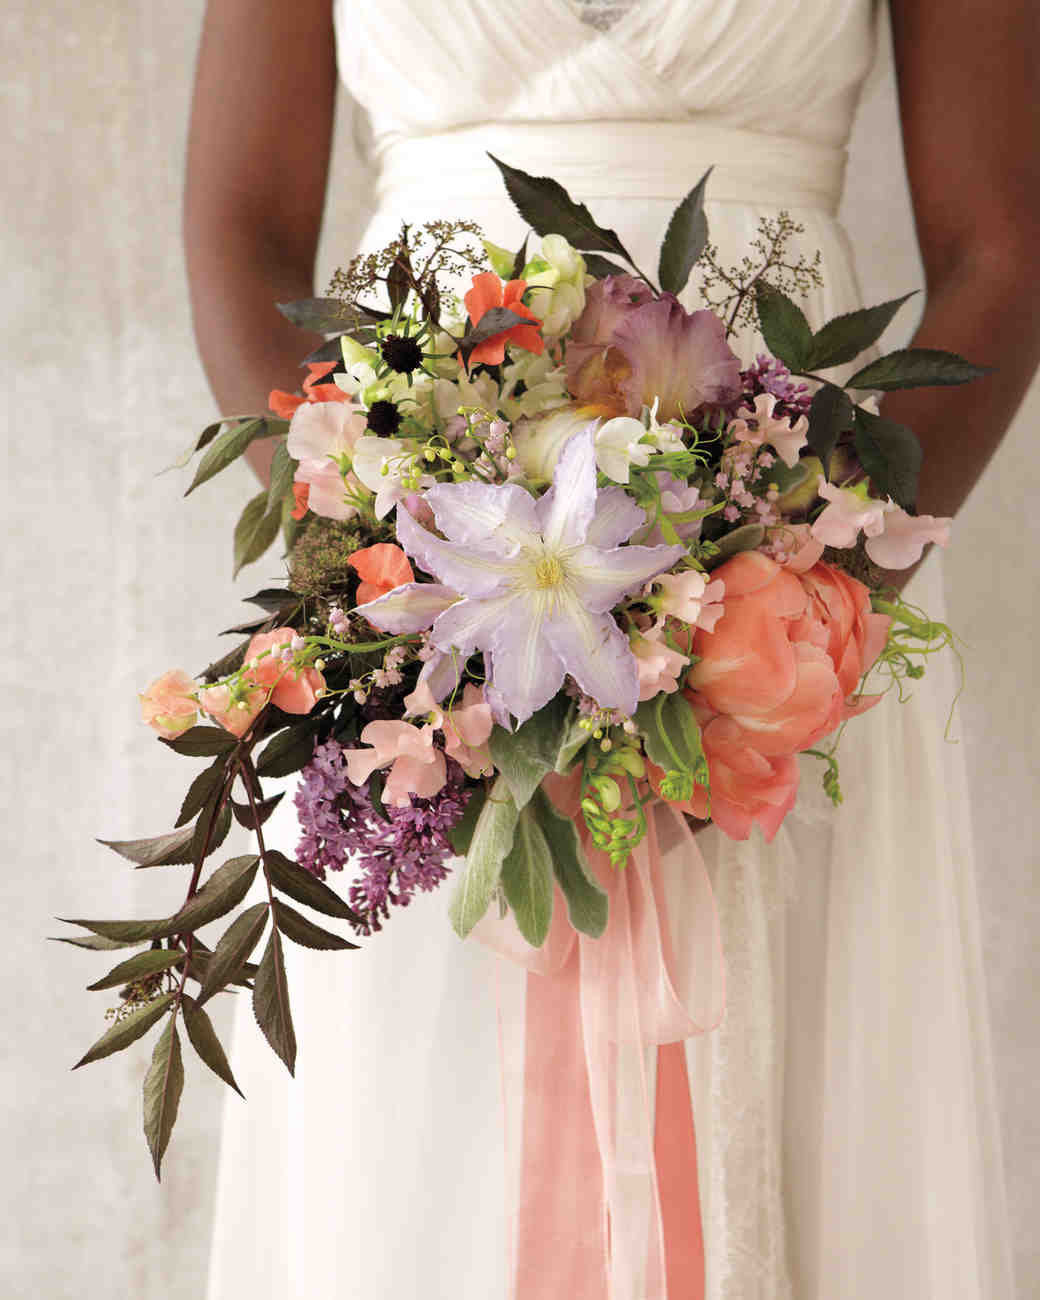 Spring Wedding Flowers Pictures: Spring Wedding Flower Ideas From The Industry's Best